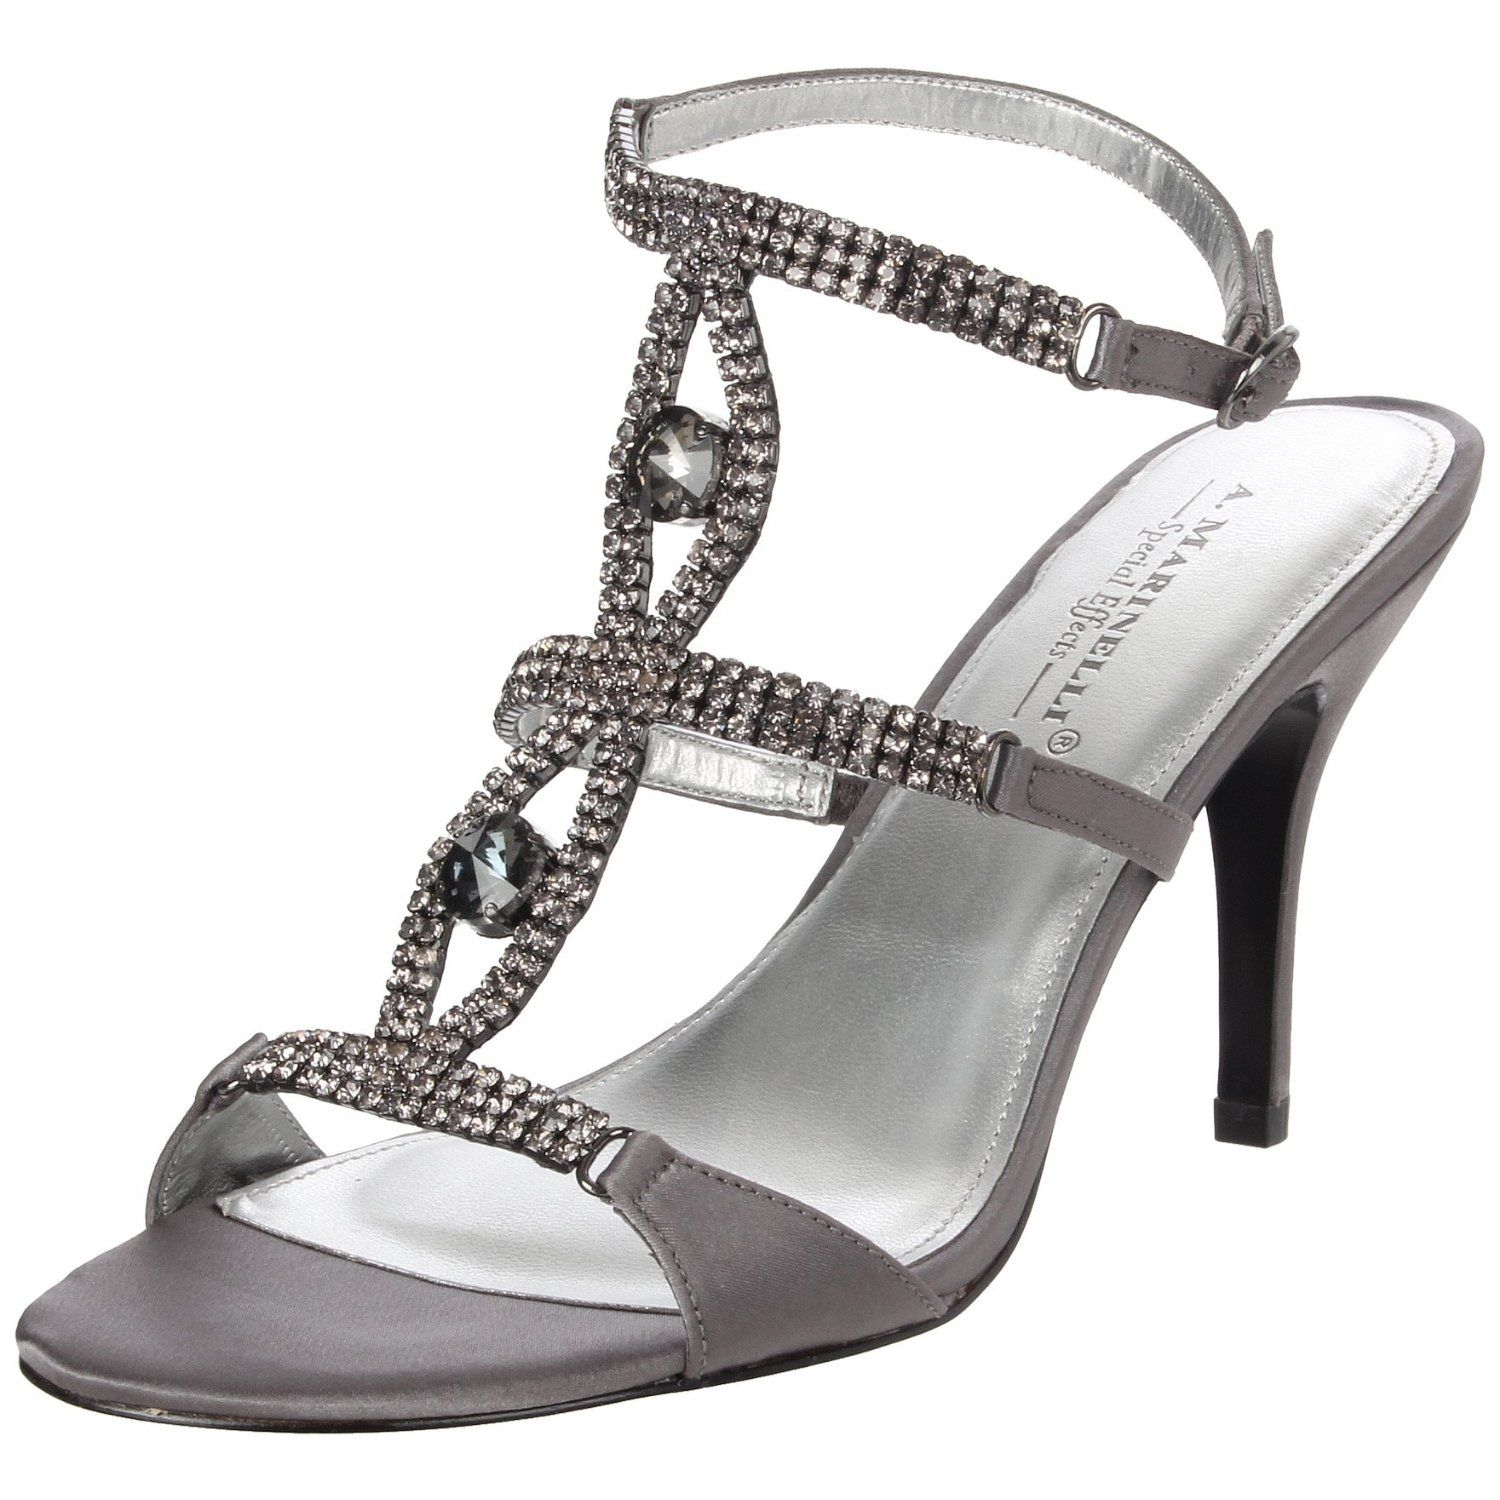 Pewter Heels For Wedding: Pewter Shoes, Sandals